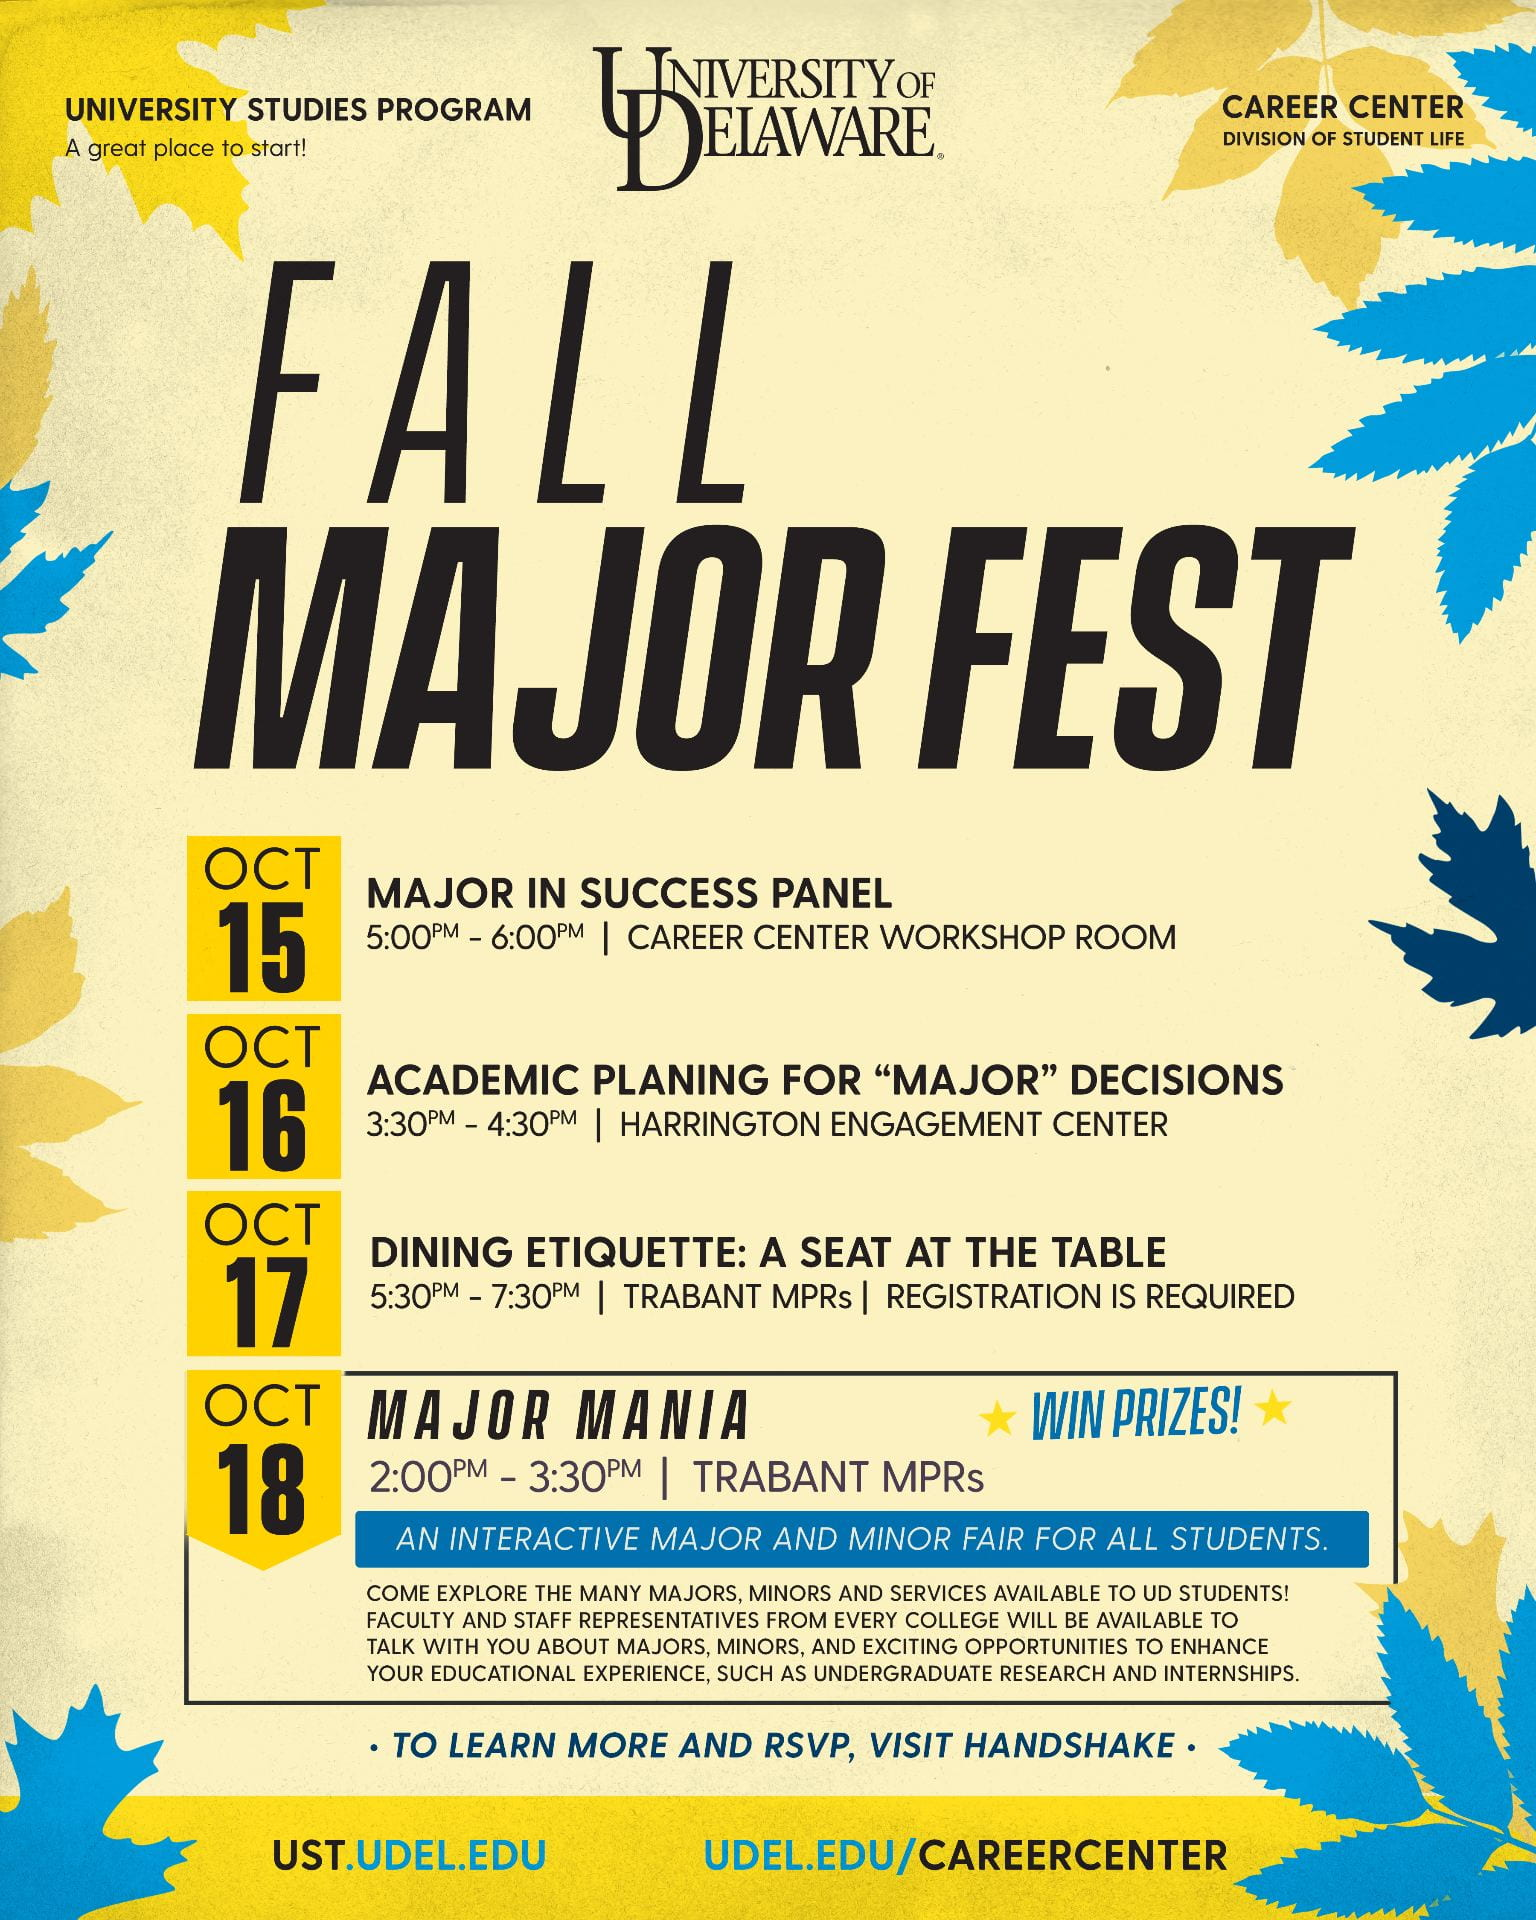 "Fall Major Fest: Oct 15 Major in Success Panel 5-6 PM, Career Center Workshop Room. Oct 16 Academic Planning for ""Major"" Decisions, 3:30-4:30 PM, Harrington Engagement Center. Oct 17 Dining Etiquette: a Seat at the Table 5:30-7:30 PM, Trabant Multipurpose Rooms, Registration is Required. Oct 18 Major Mania 2-3:30 PM, Trabant Multipurpose Rooms, an interactive major and minor fair for all students, Win prizes! Come explore the many majors, minors, and services available to UD students! Faculty and staff representatives from every college will be available to talk with you about majors, minors, and exciting opportunities to enhance your educational experience, such as undergraduate research and internships. To learn more and rsvp, visit Handshake. ust.udel.edu. udel.edu/careercenter"